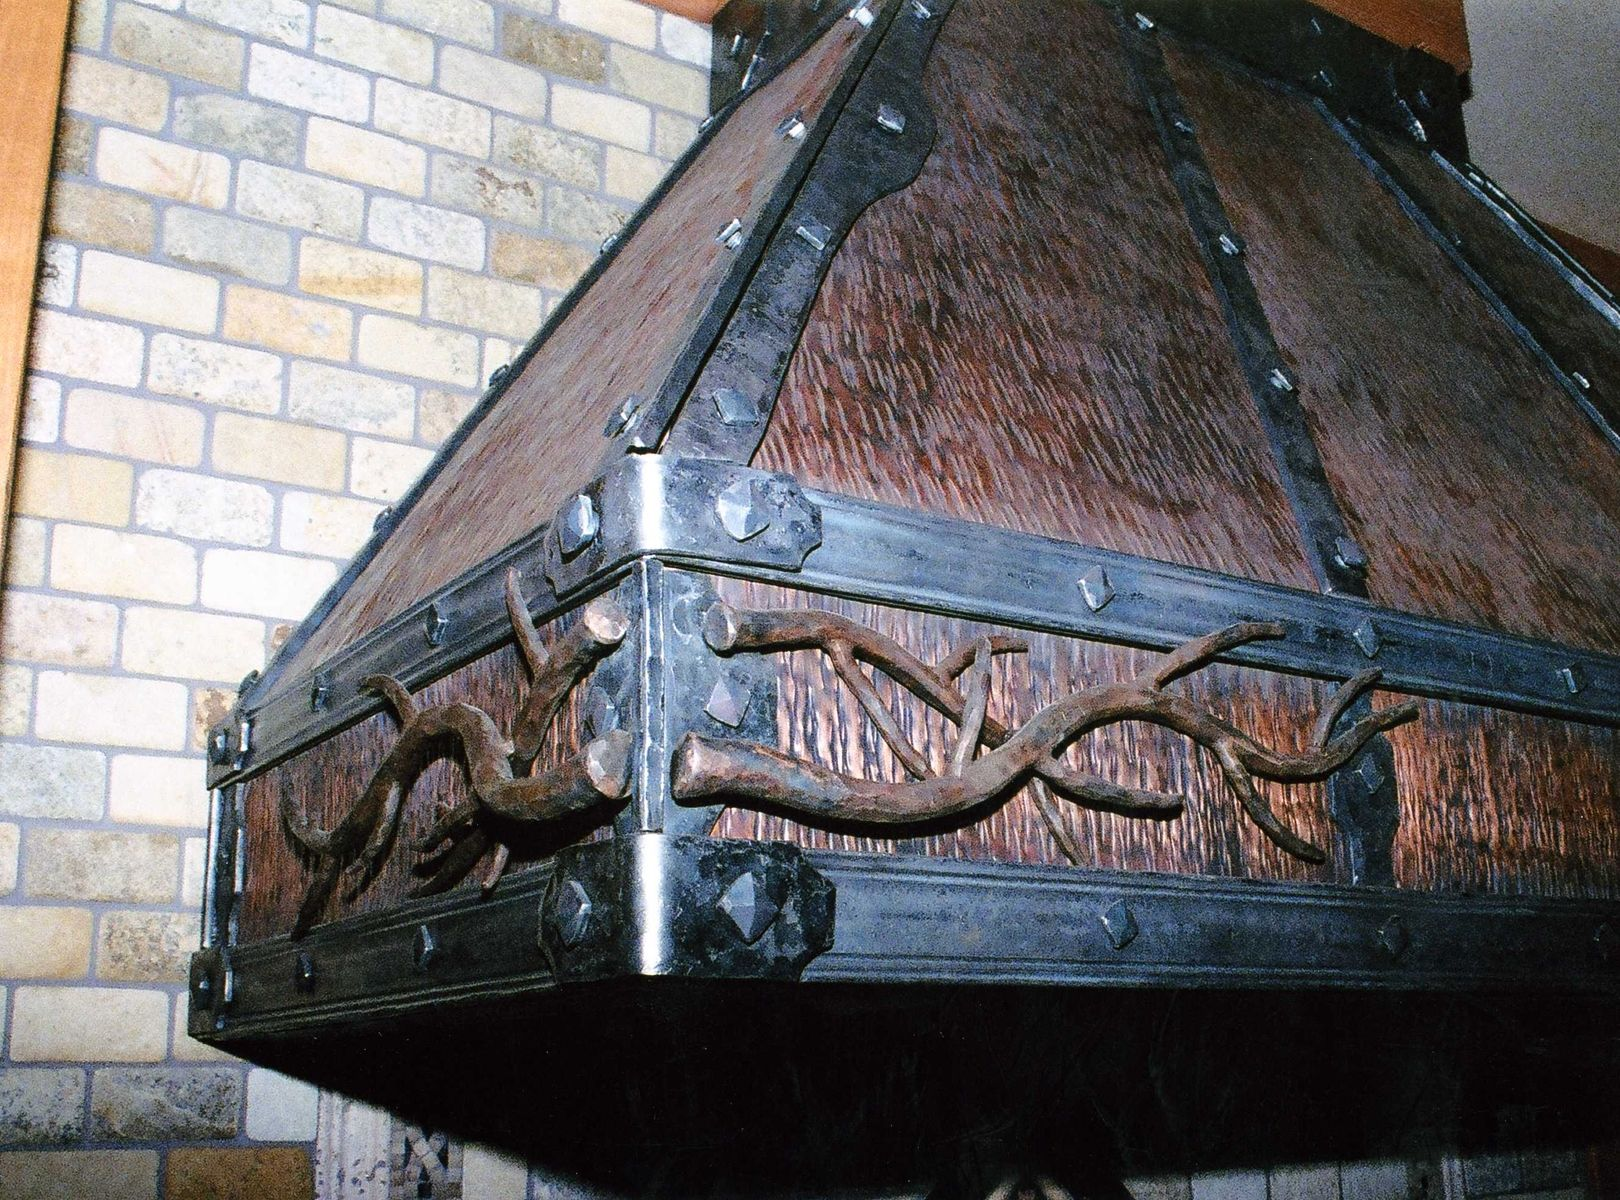 Hand Made Hand Forged Iron & Copper Metal Range Hood by Cabinets & Design Iron Llc CustomMade.com